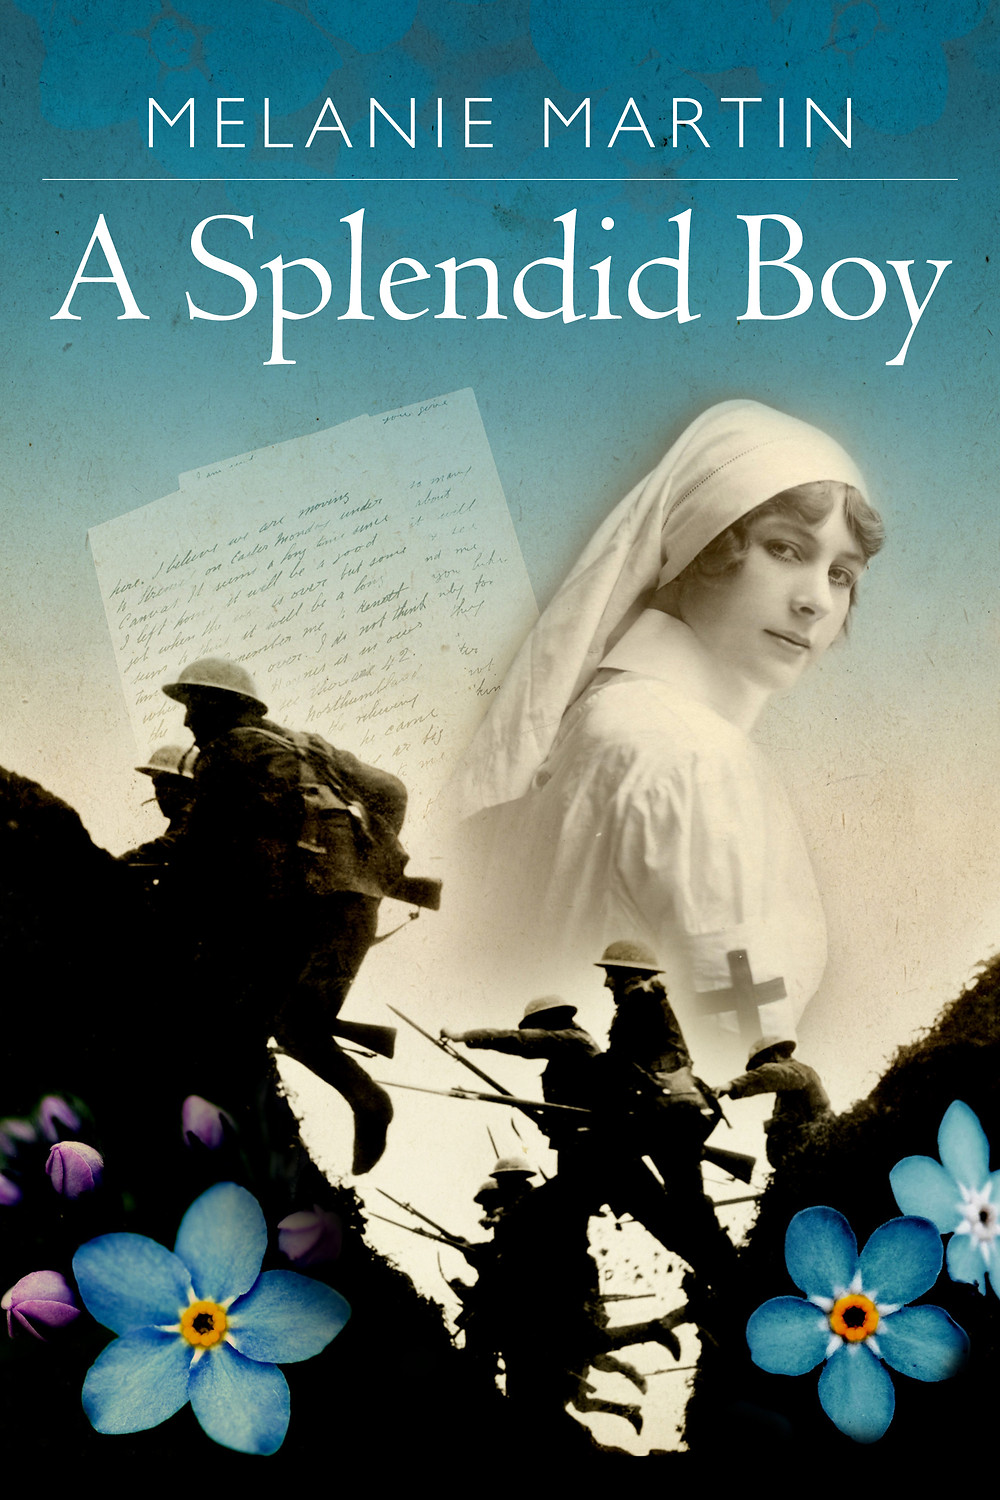 A SPLENDID BOY by Melanie Martin